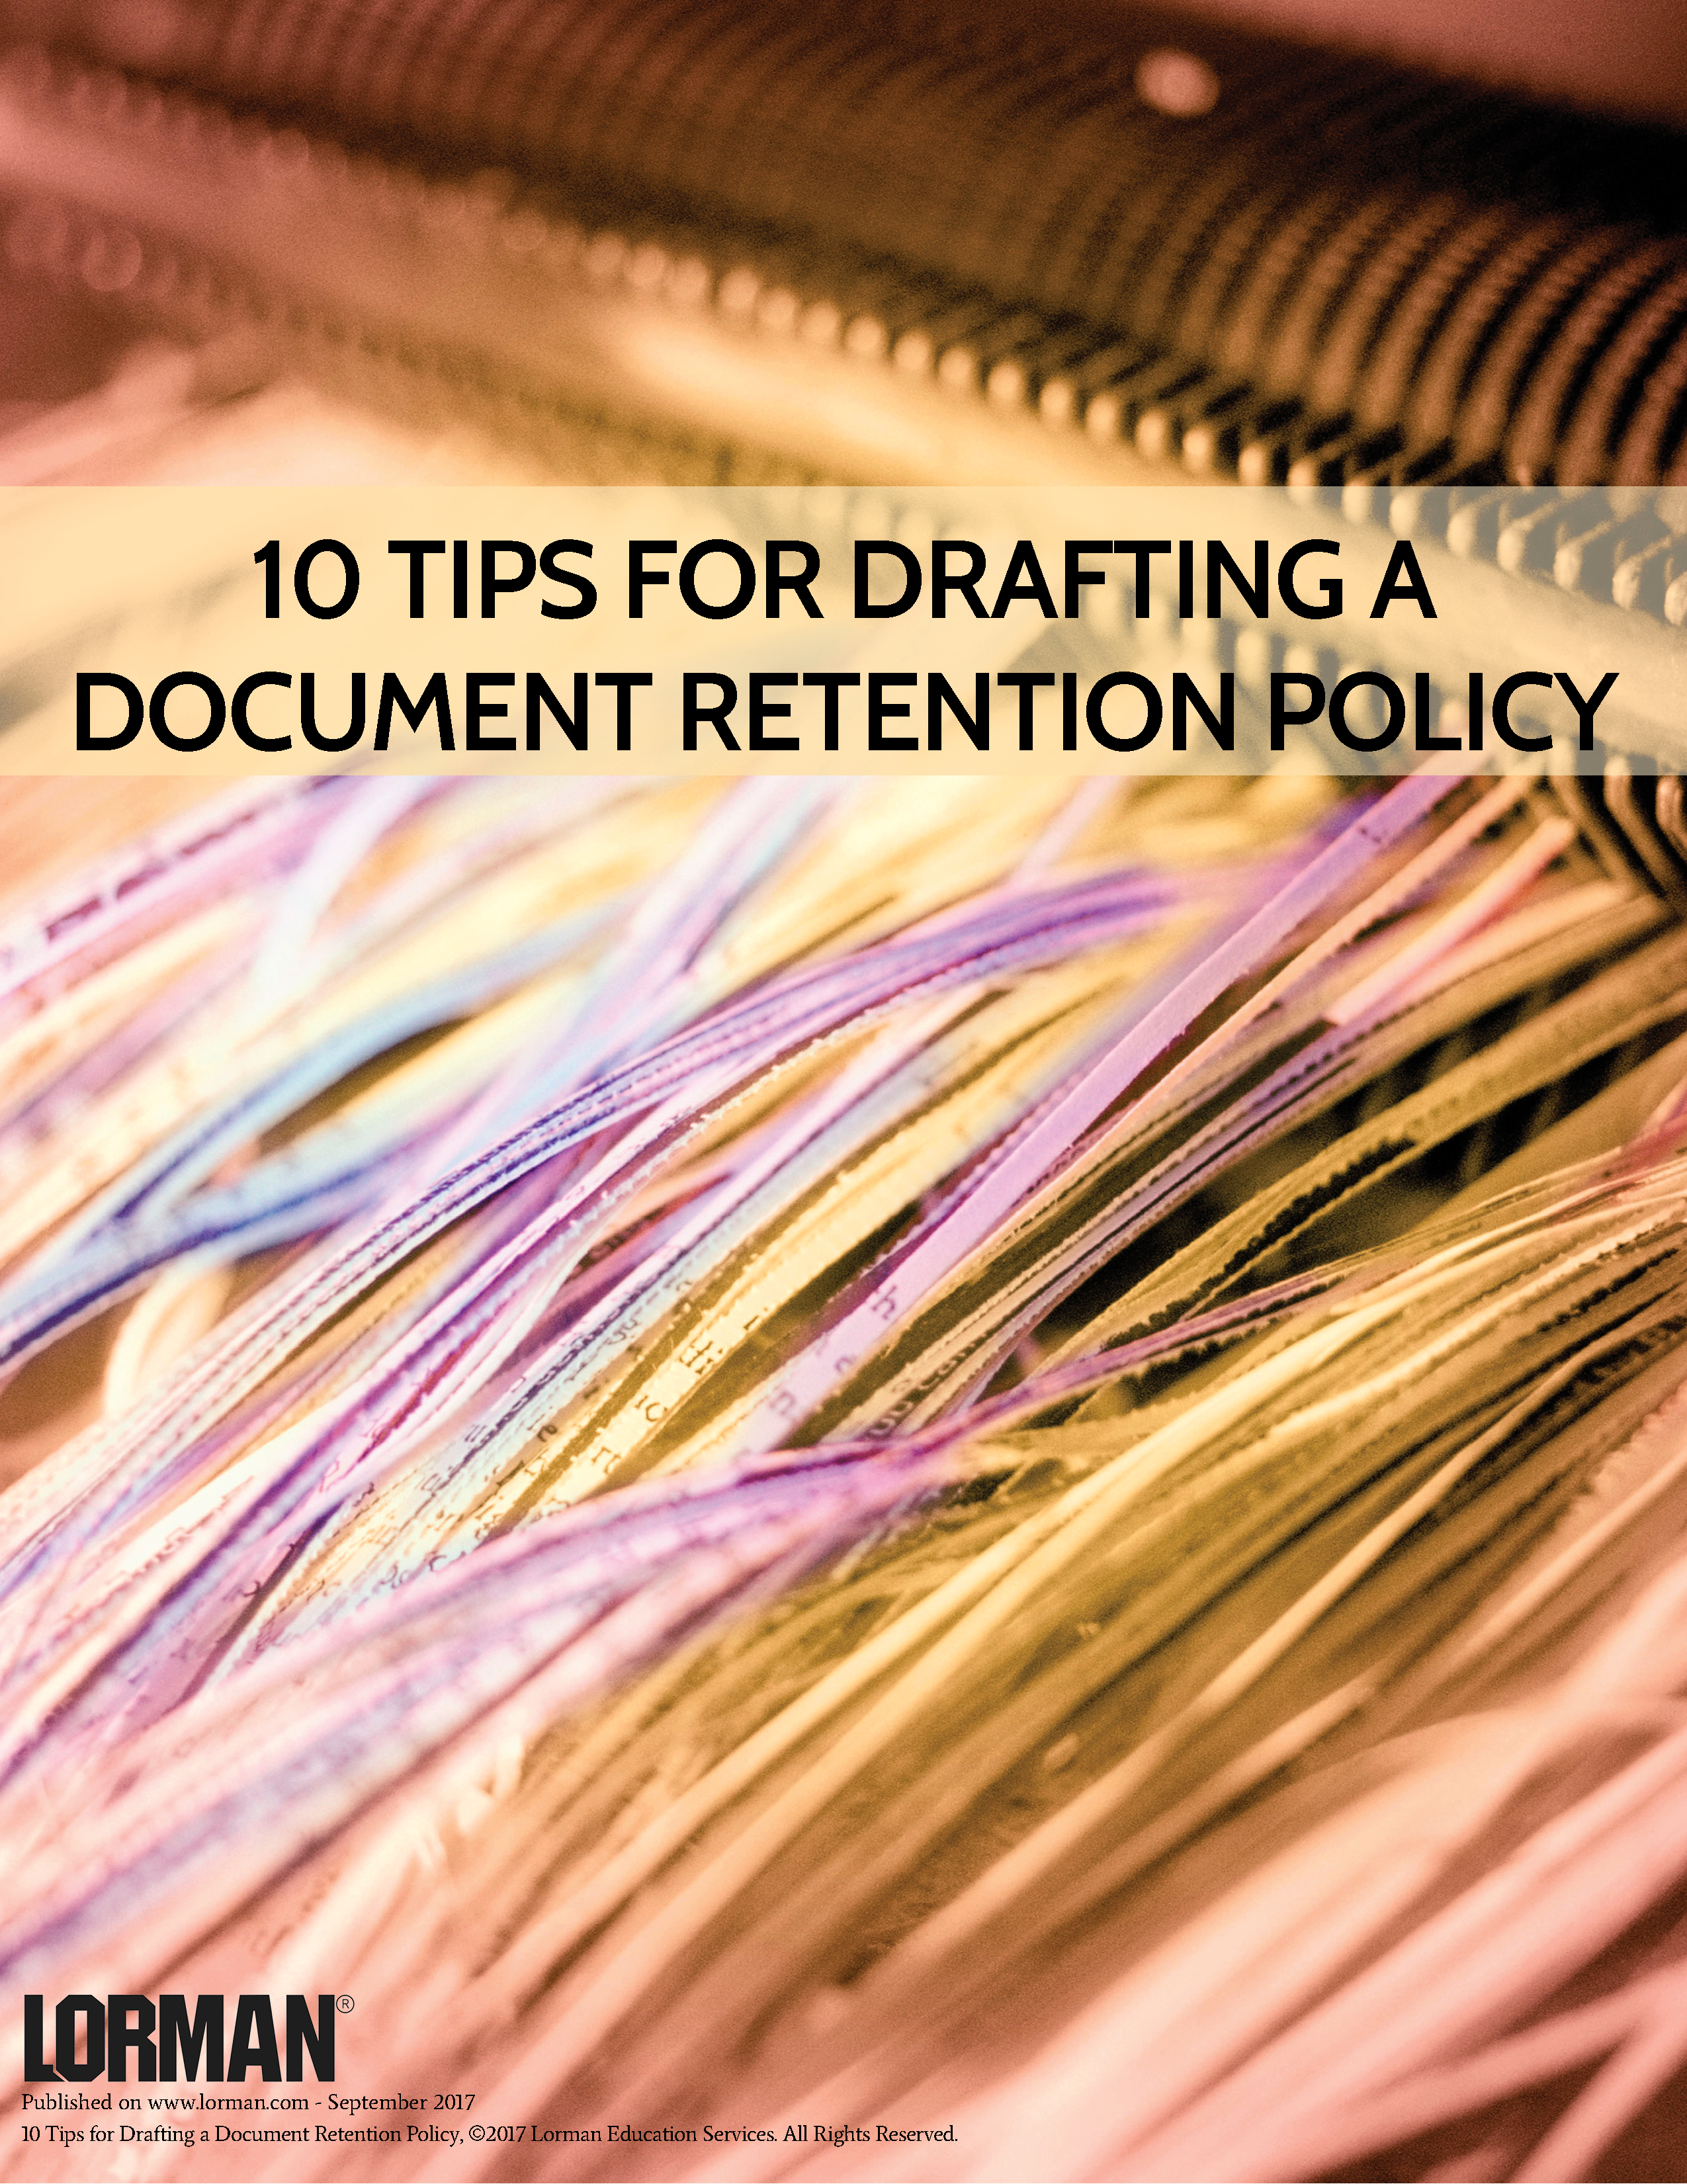 10 Tips for Drafting a Document Retention Policy